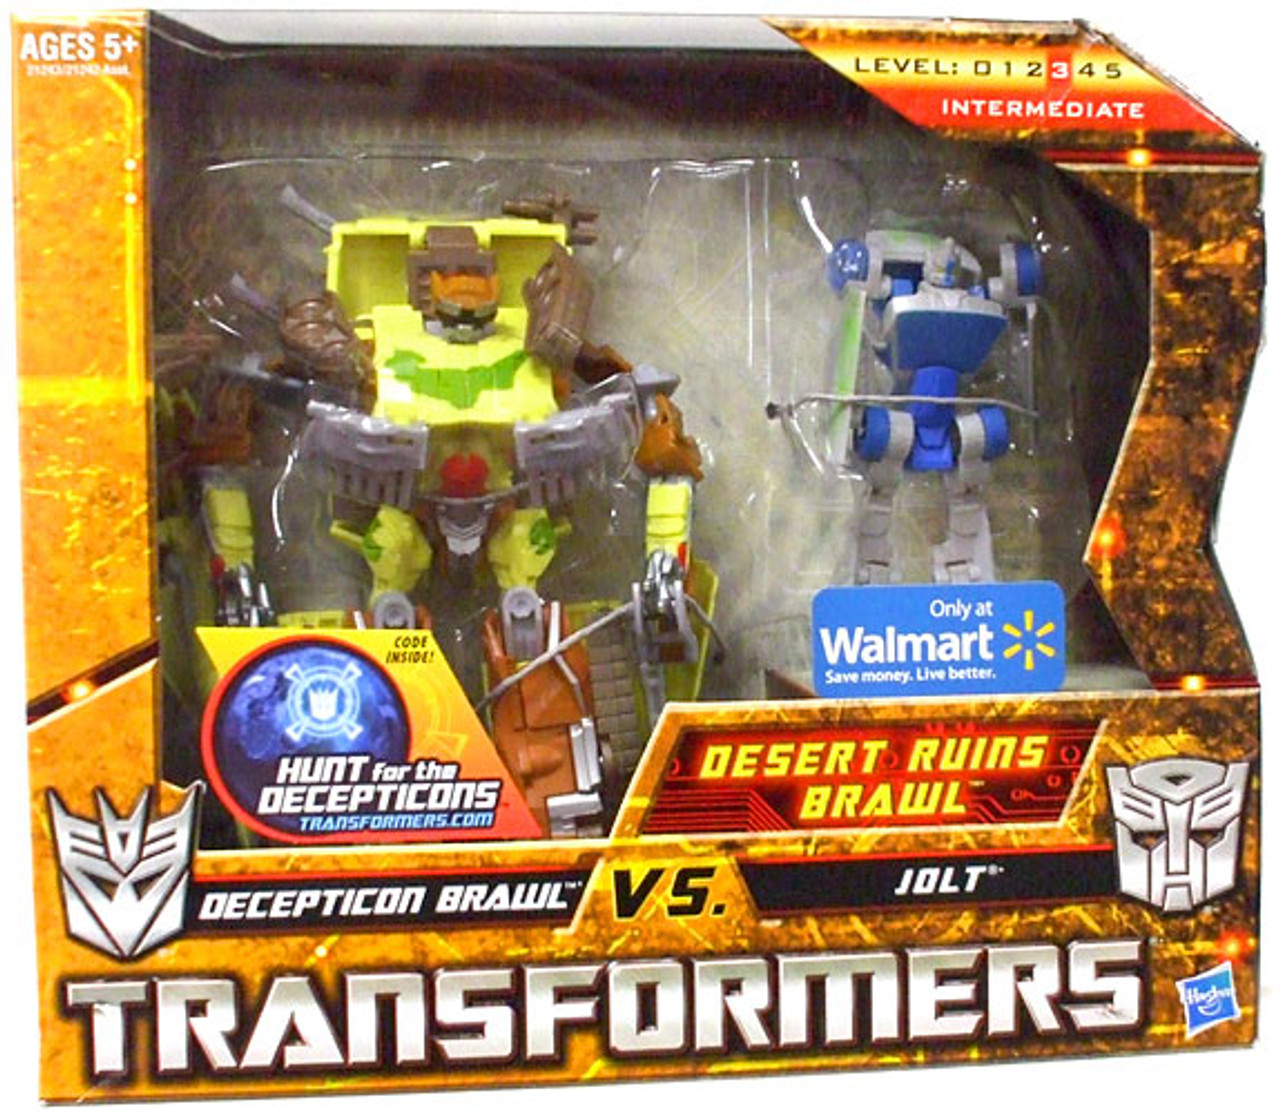 Transformers Hunt for the Decepticons Desert Ruins Brawl Exclusive Deluxe Action Figure Set